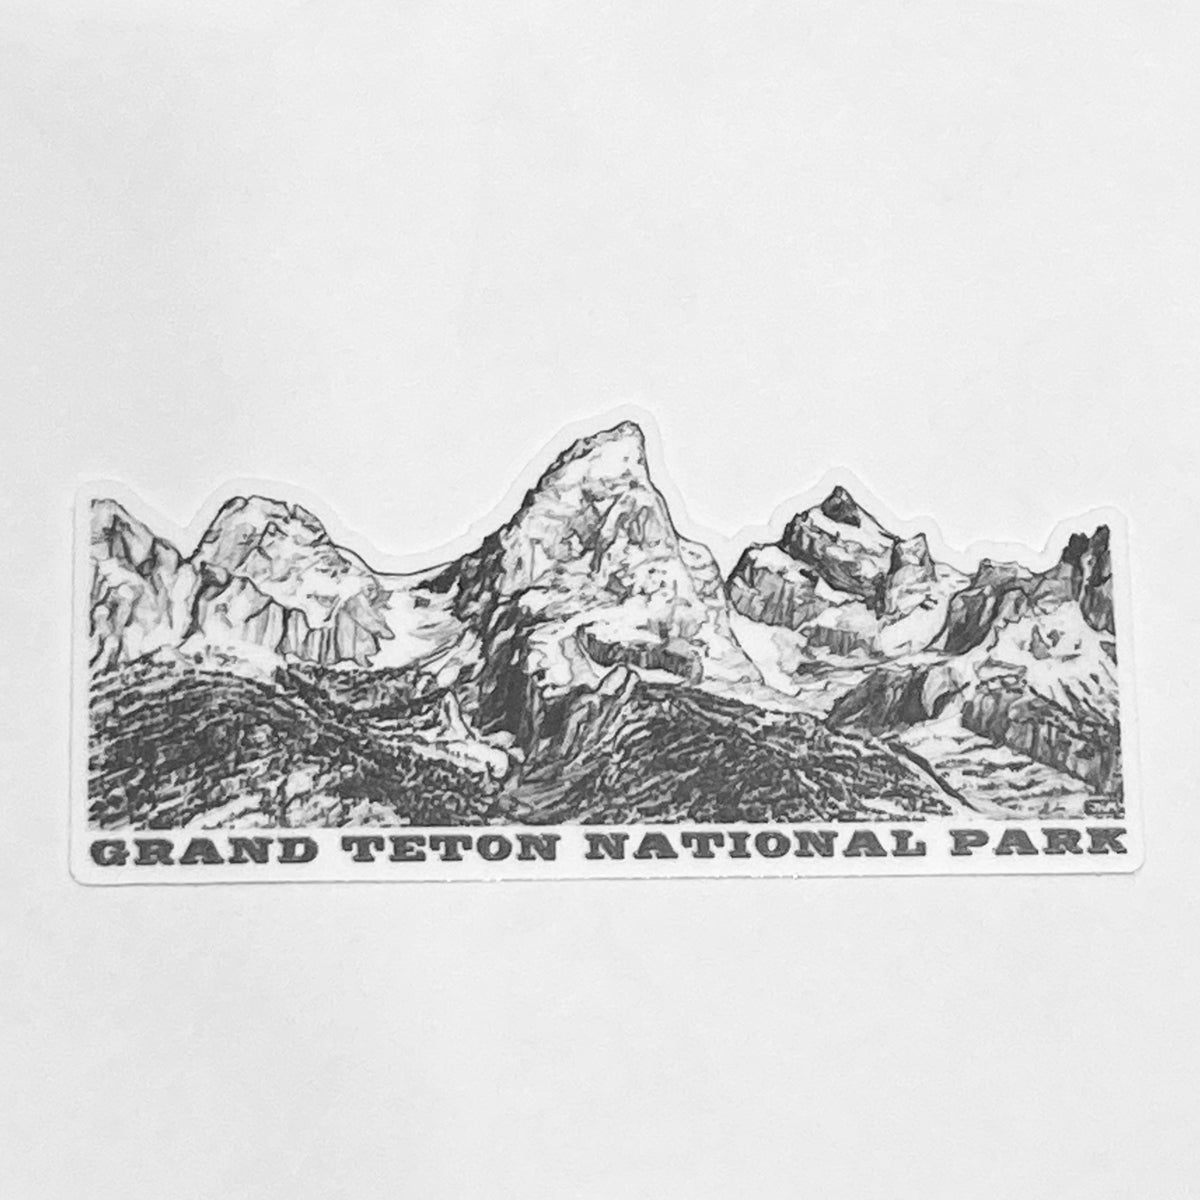 The Grand Teton National Park Cut Out Sticker